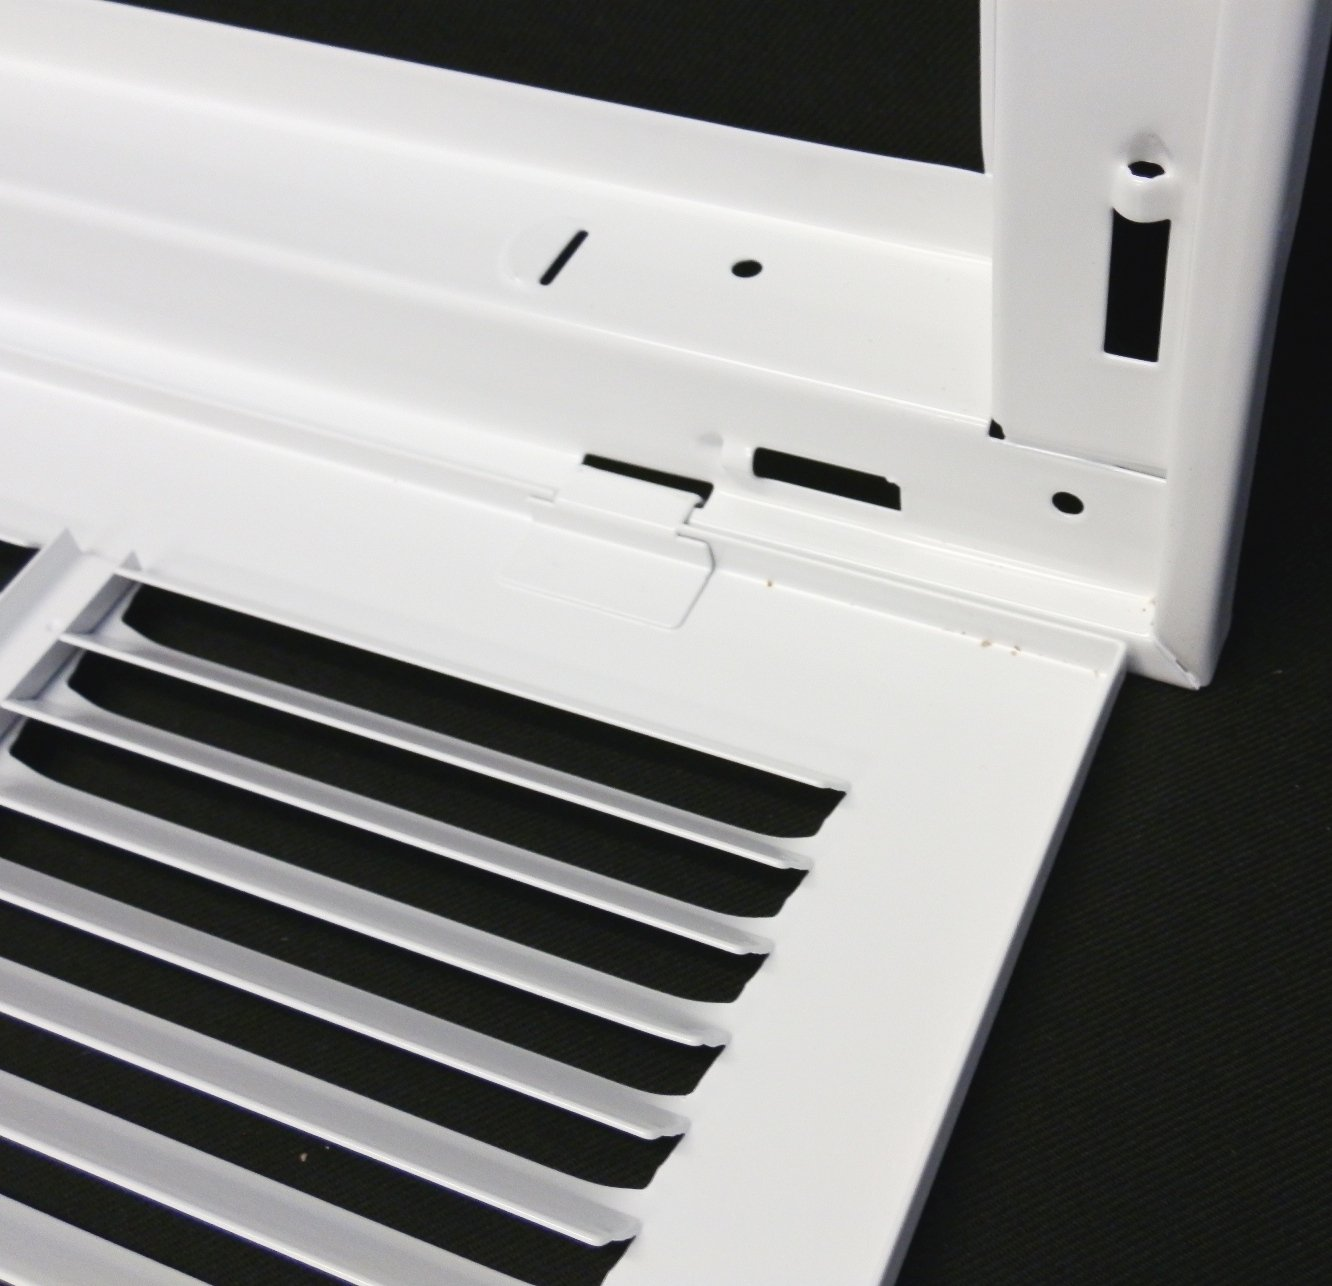 30'' X 14 Steel Return Air Filter Grille for 1'' Filter - Removable Face/Door - HVAC DUCT COVER - Flat Stamped Face - White [Outer Dimensions: 32.5''w X 16.5''h] by HVAC Premium (Image #3)